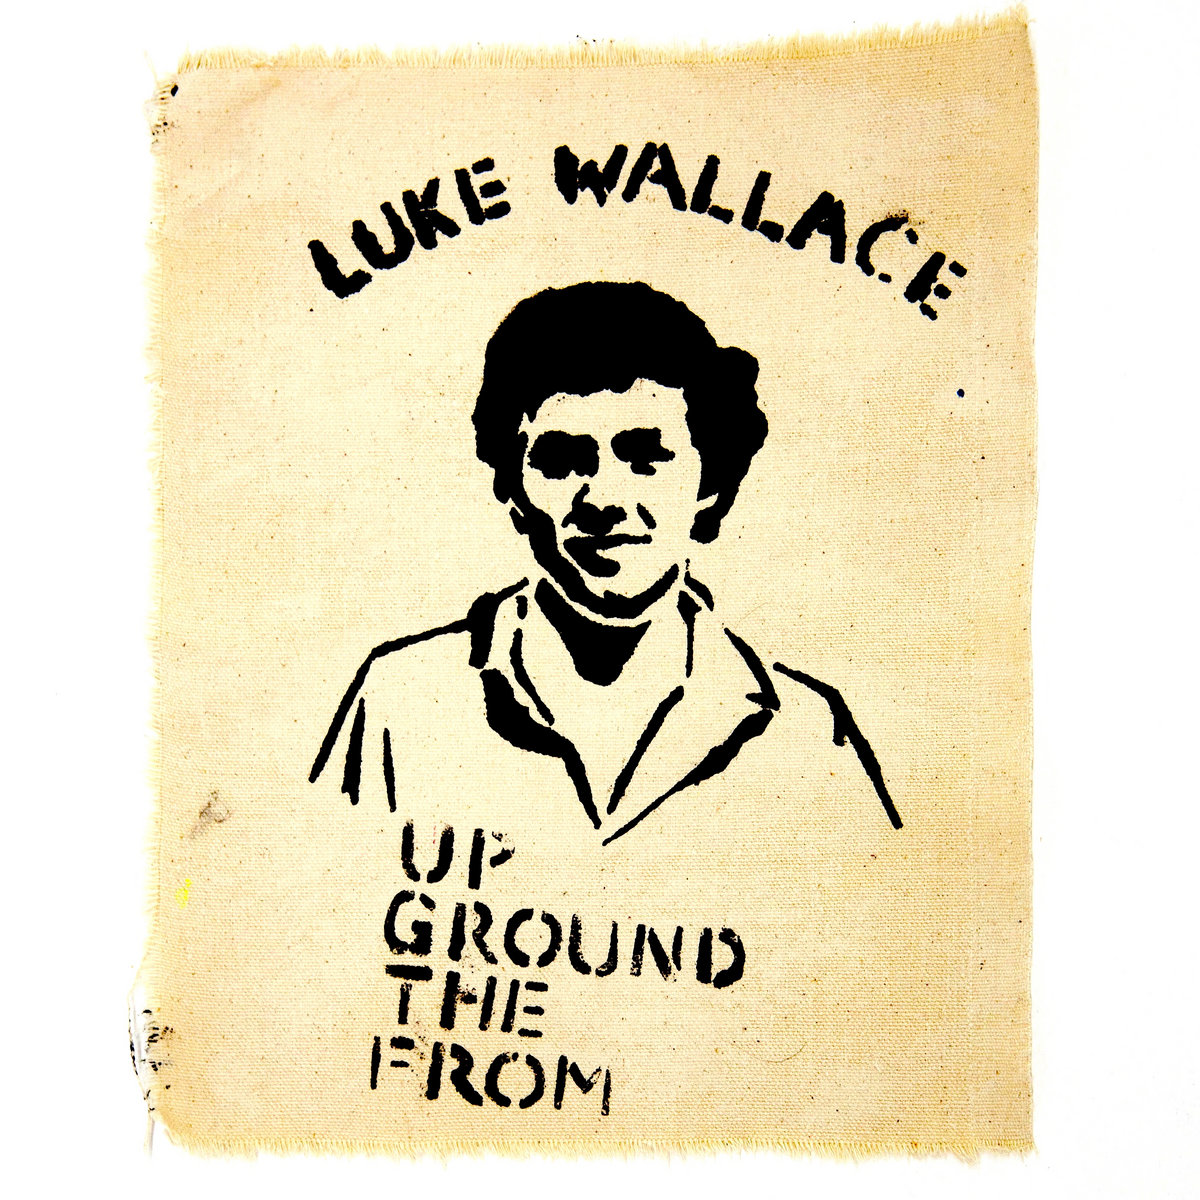 From The Ground Up from the ground up | luke wallace